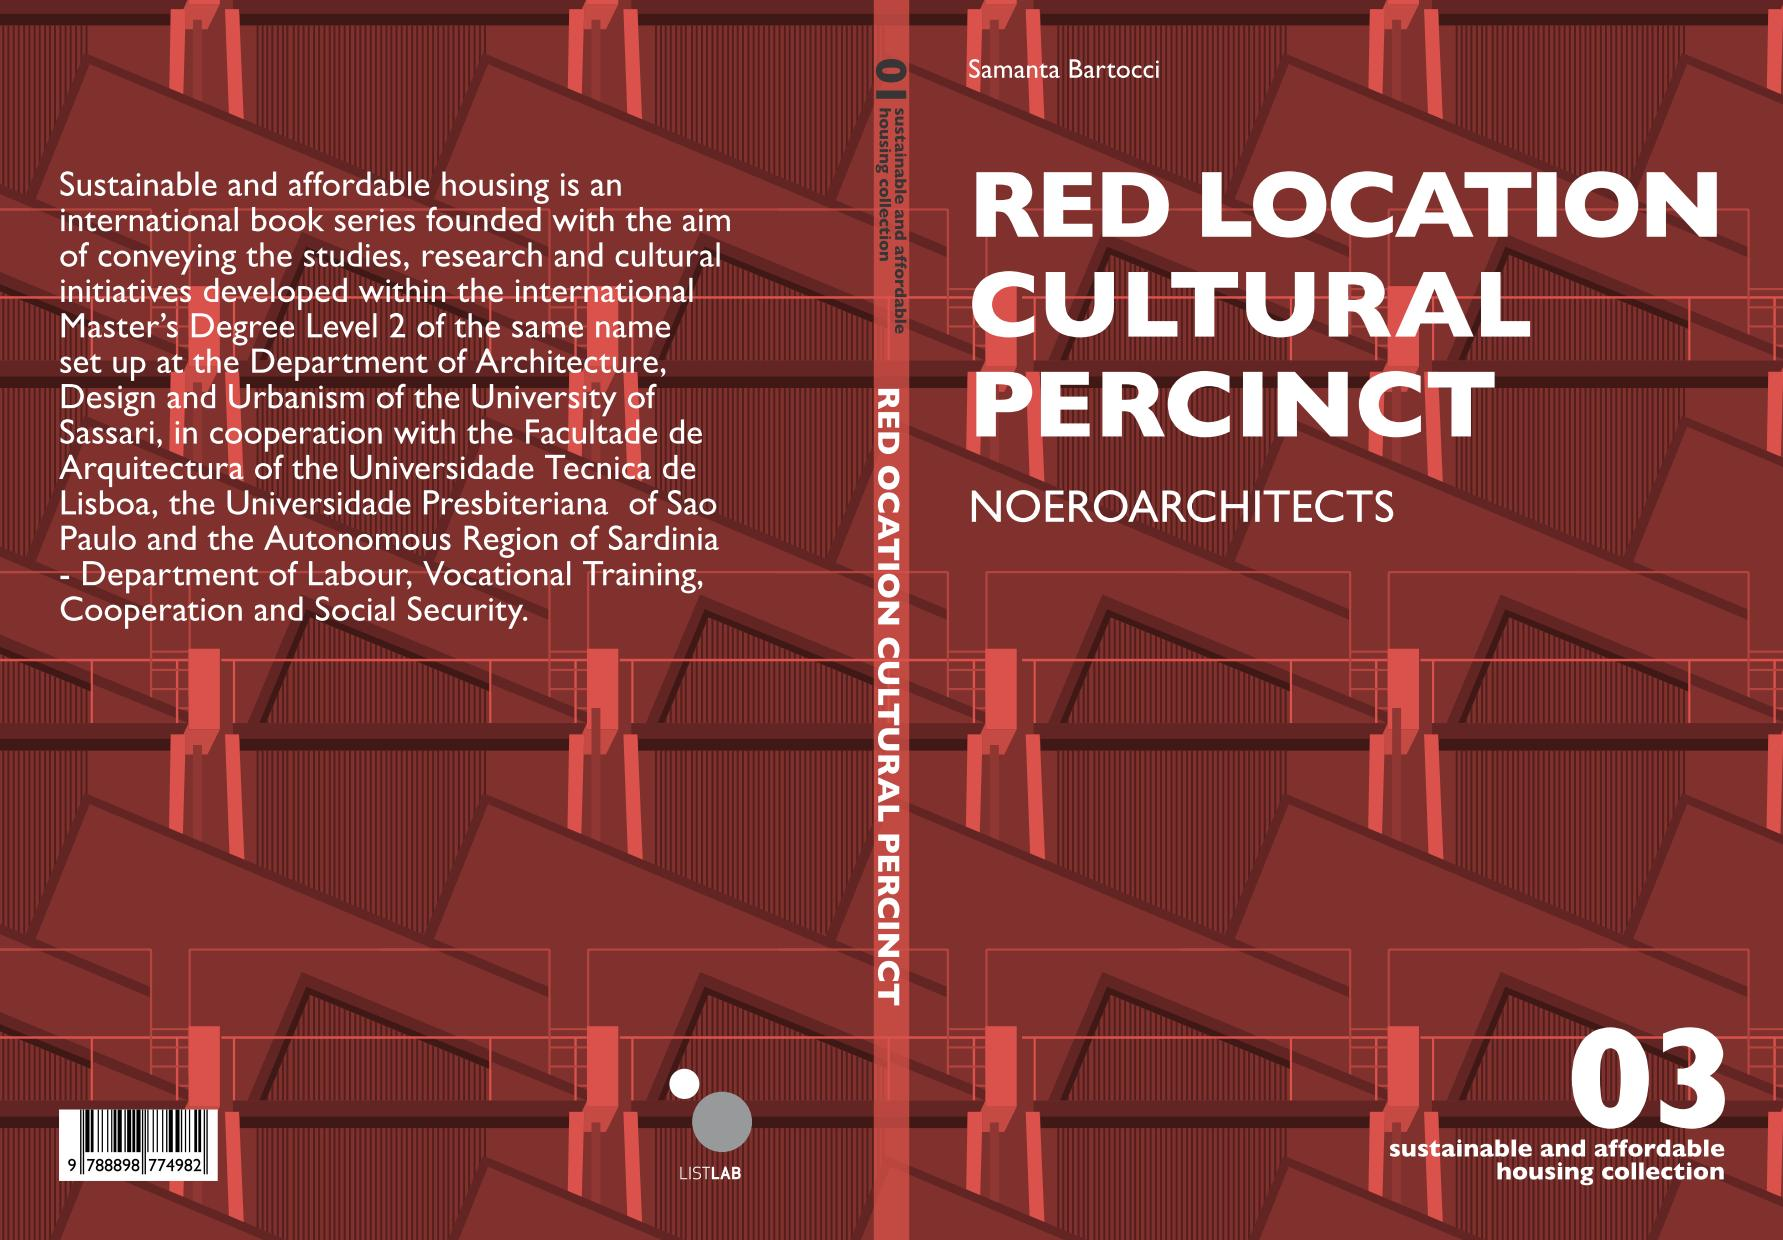 NOEROARCHITECTS RED LOCATION CULTURAL PERCINCT